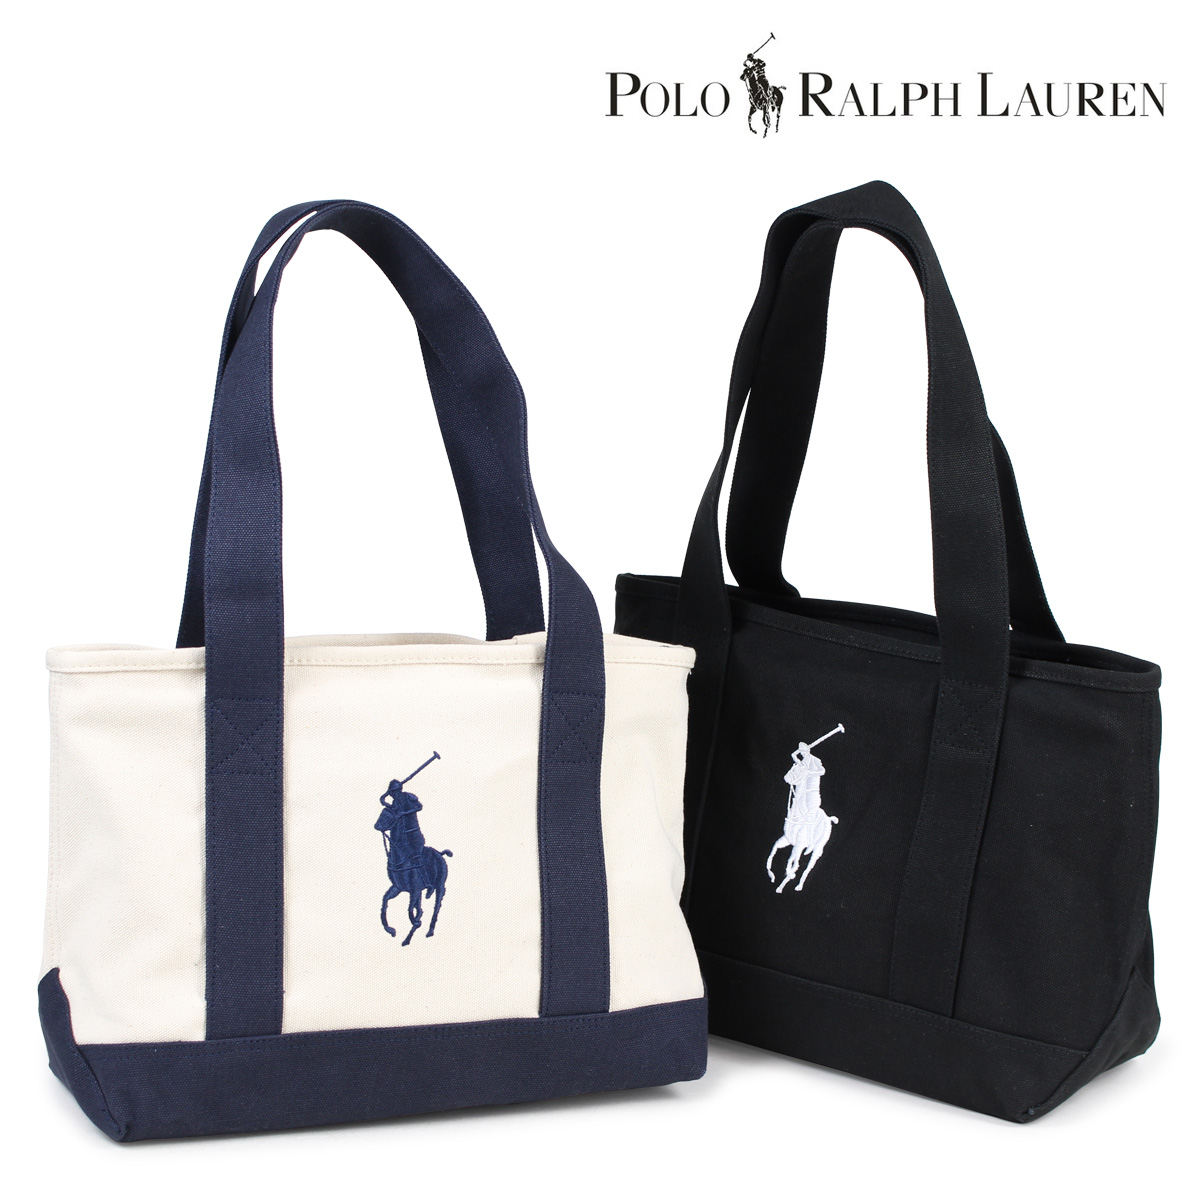 Whats Up Sports Polo Ralph Lauren Pony Tote Bag 988fdc247ebe8